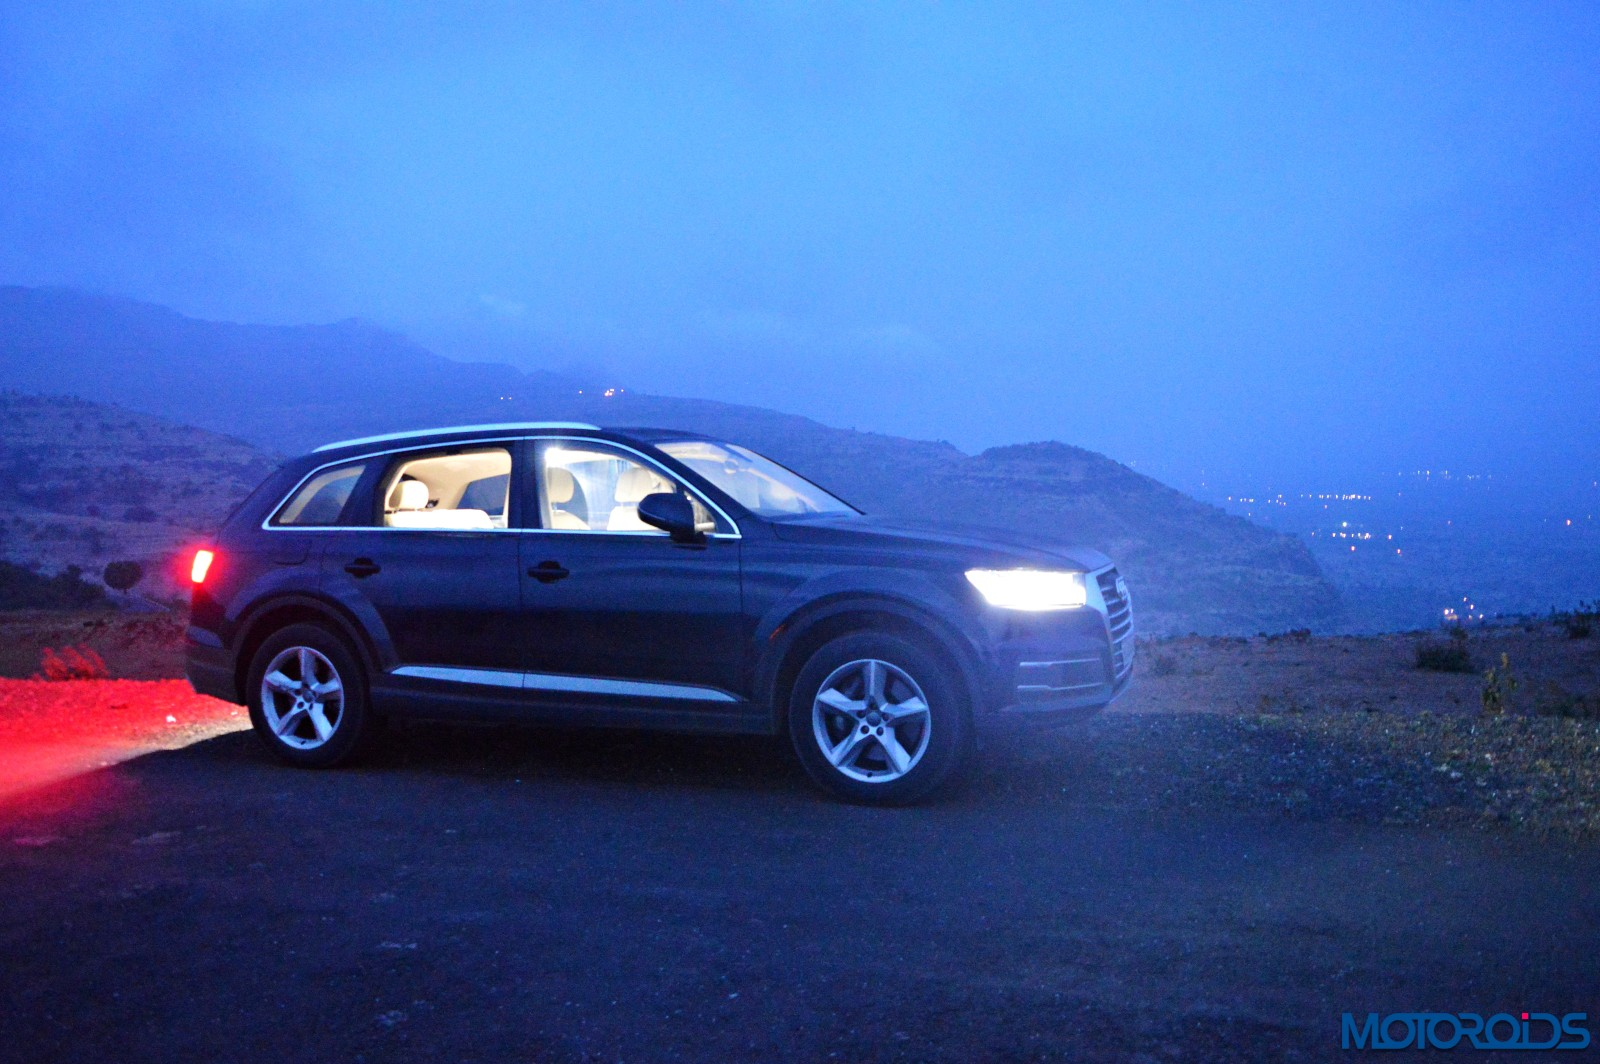 Audi Q7 - Weekend Travelogue (5)